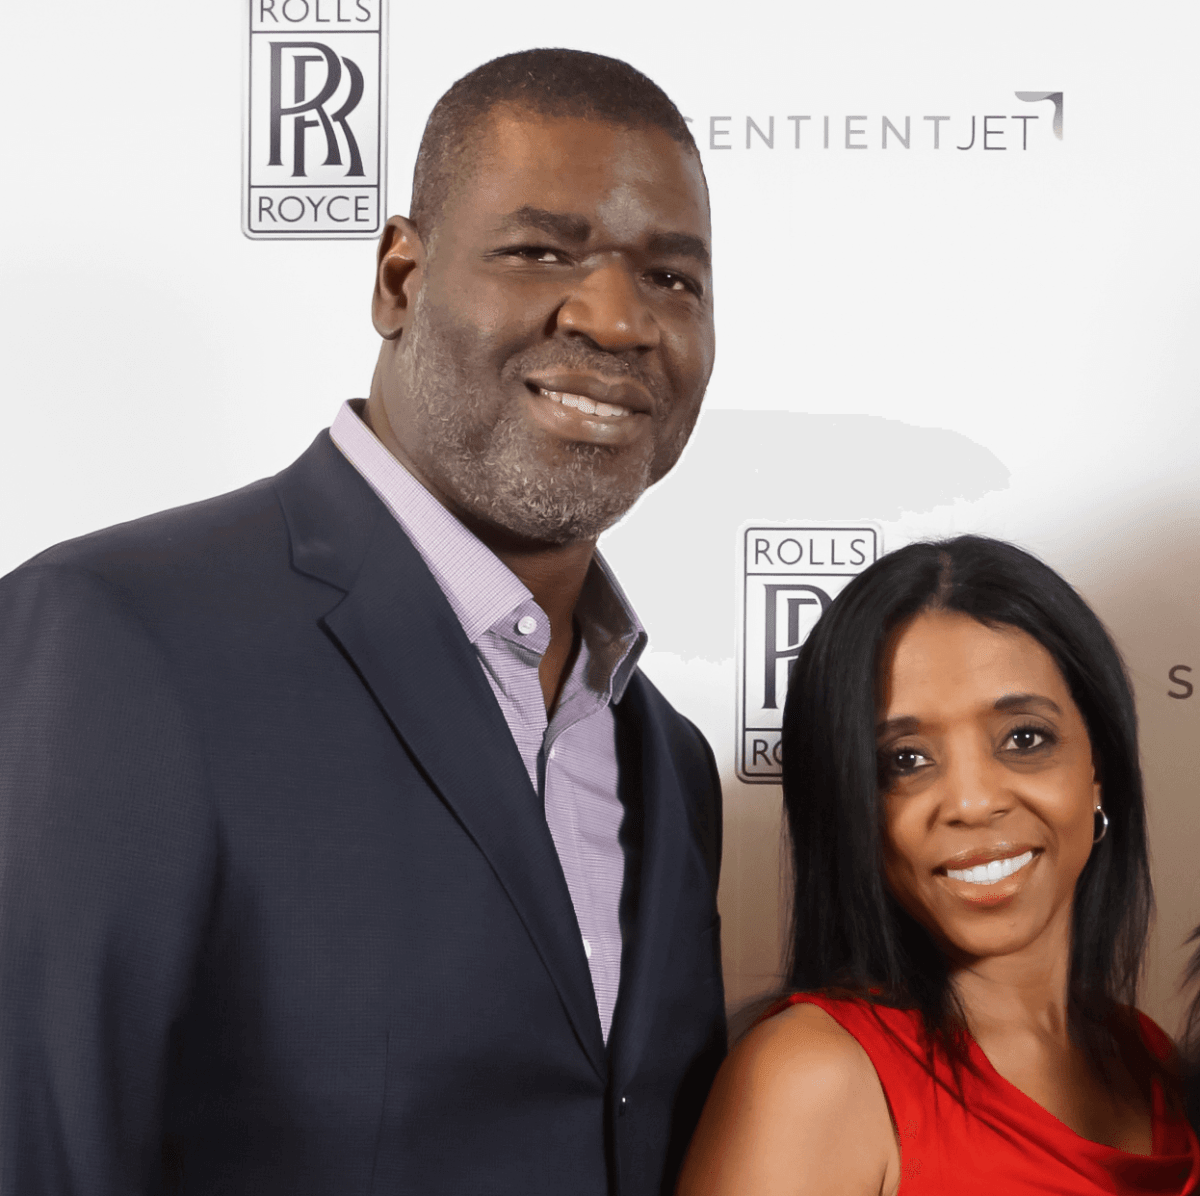 Sean Jones and wife at Saks Fifth Avenue Super Bowl party